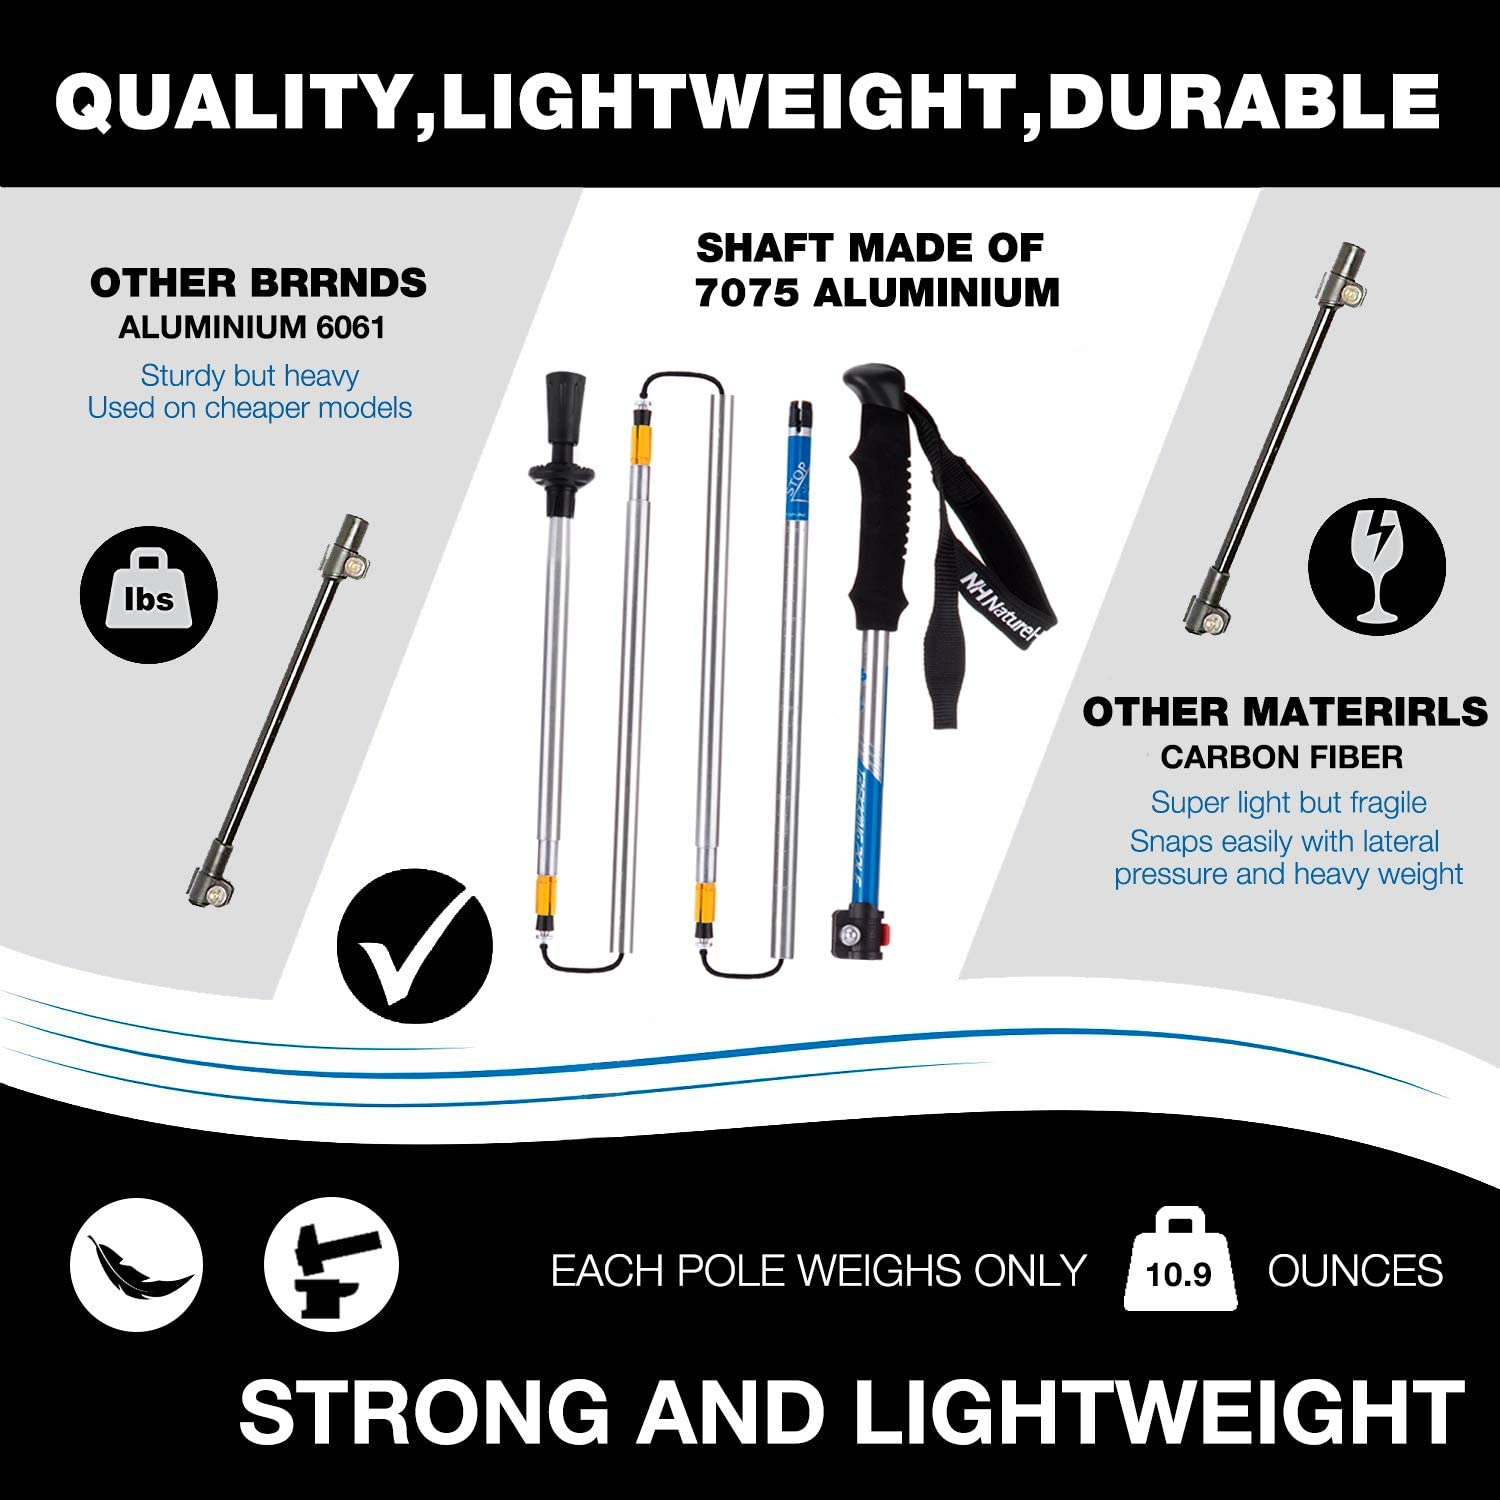 Naturehike Foldable Trekking Pole, Collapsible and Adjustable Hiking Walking Stick Poles for Outdoor Climbing with Lever Lock and Carry Sack 5-Section